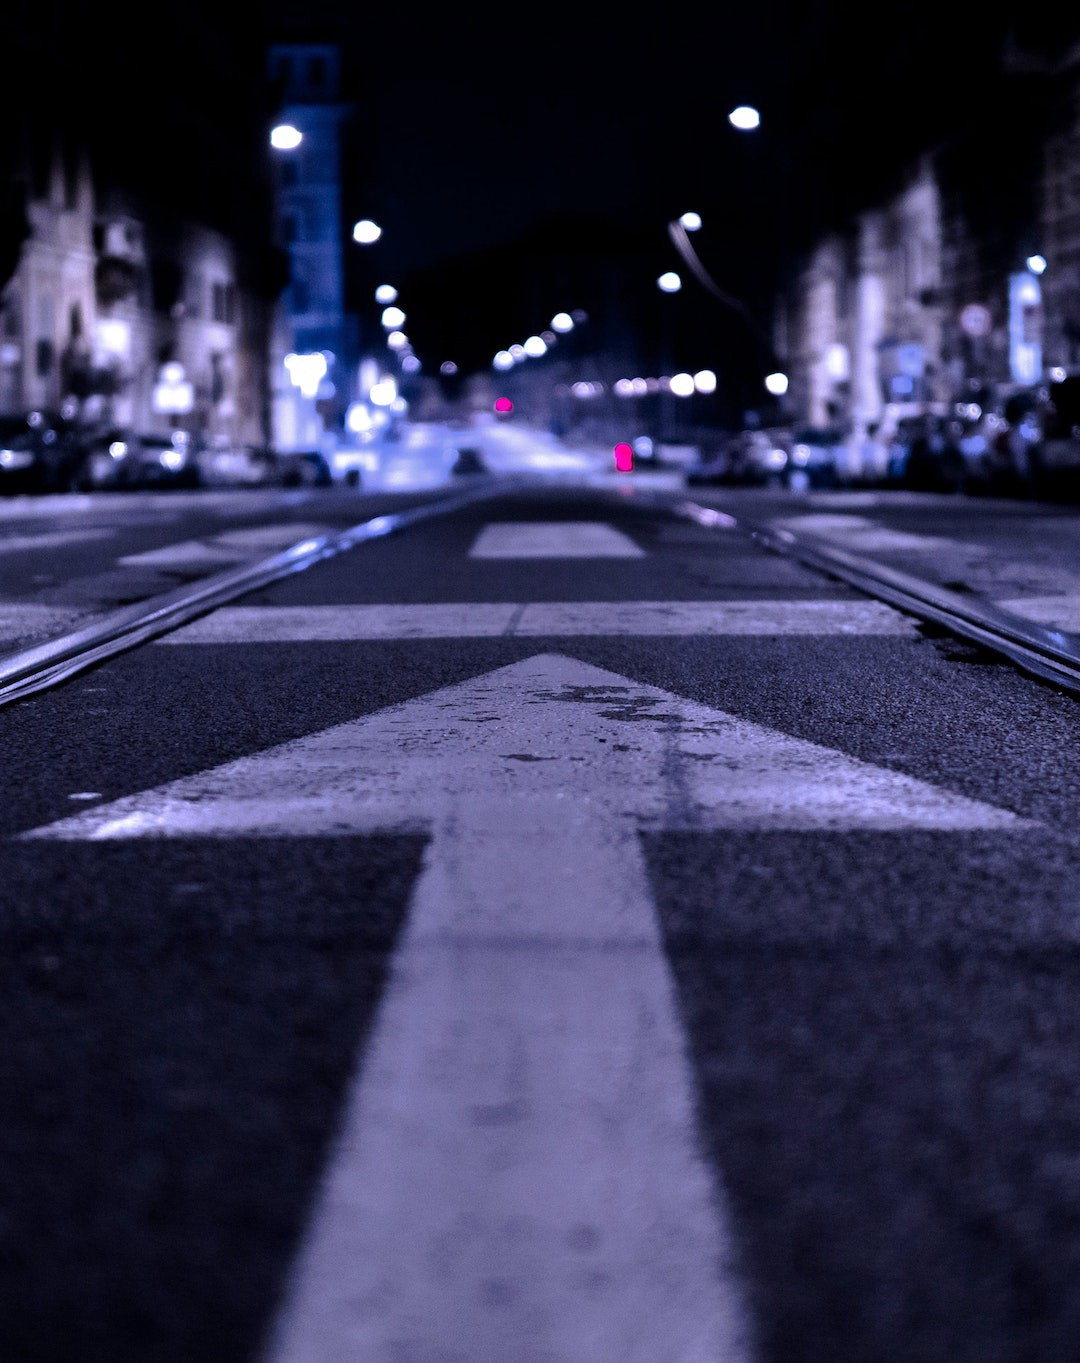 Streetscape at night featuring a city street with an arrow painted on it, pointing straight ahead